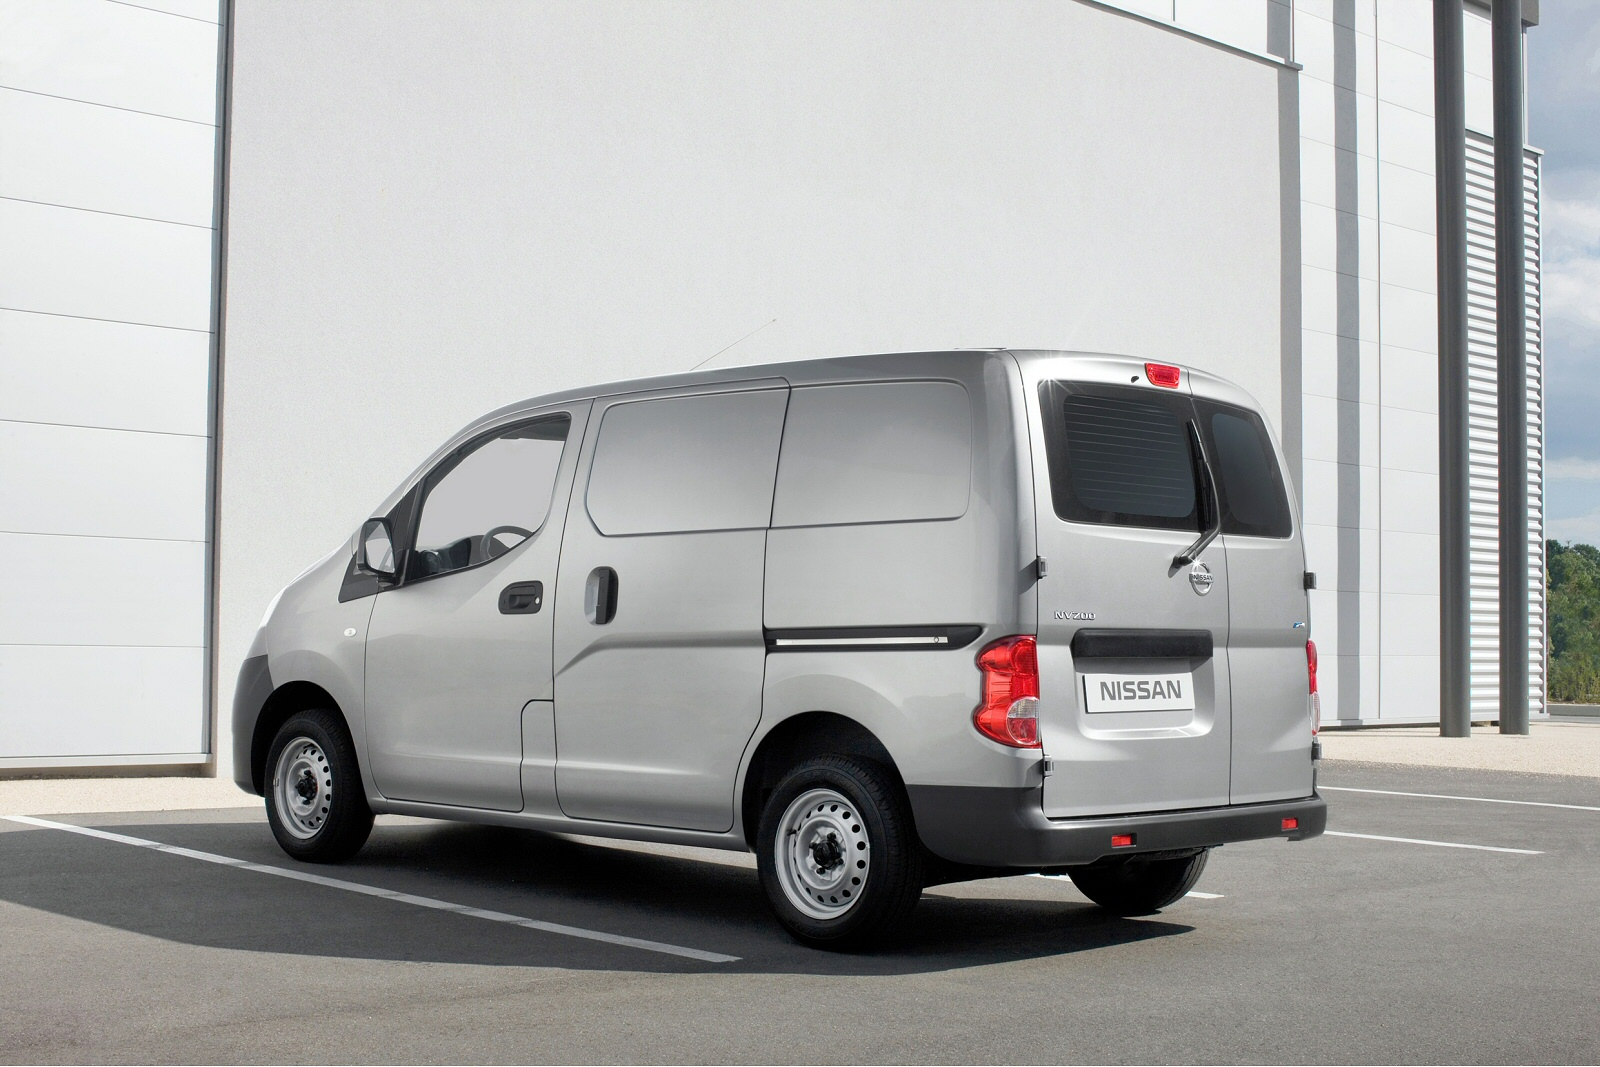 new nissan nv200 diesel 1 5 dci 110 tekna van for sale macklin motors. Black Bedroom Furniture Sets. Home Design Ideas